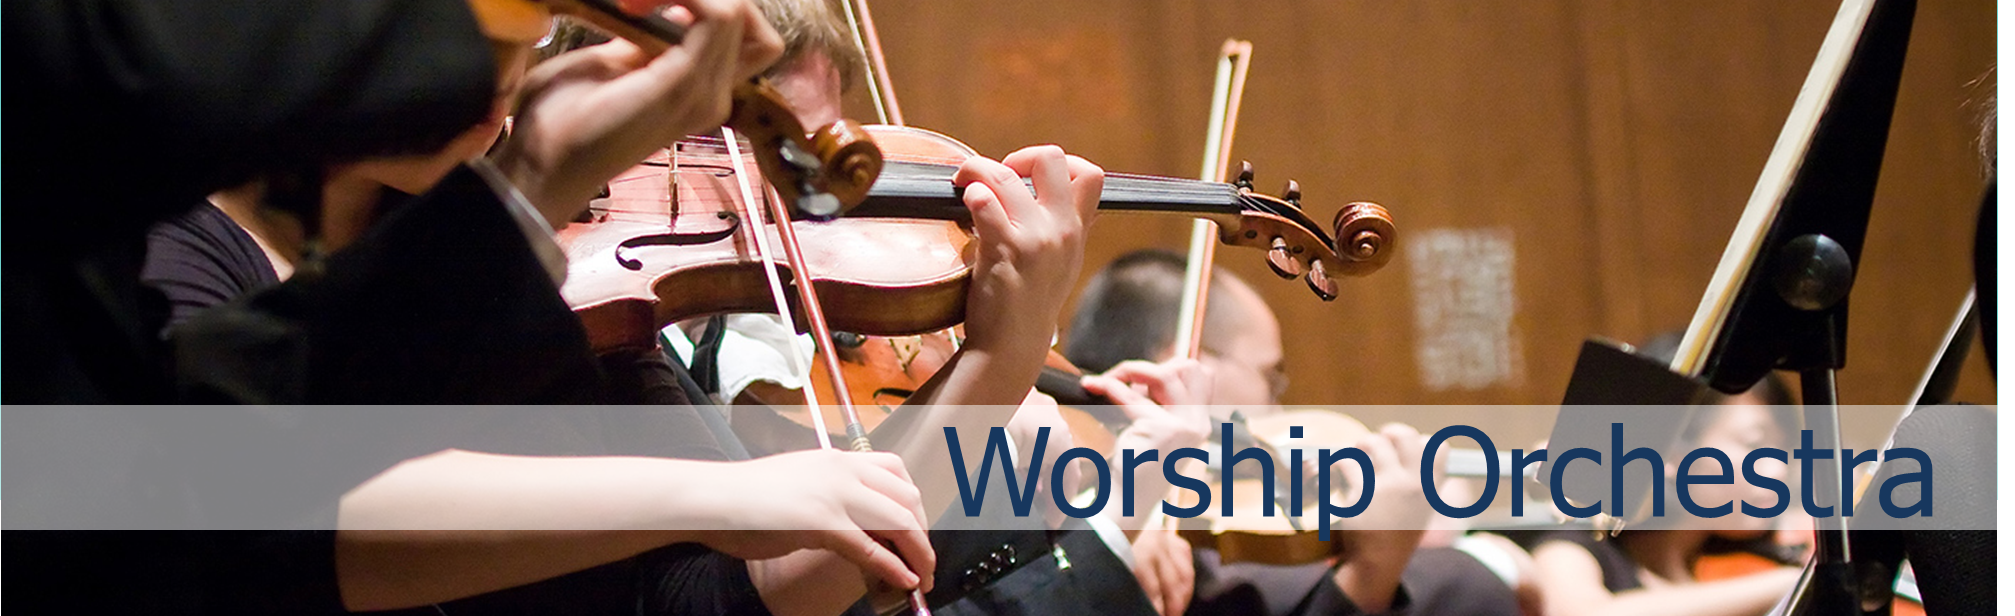 Worship Orchestra